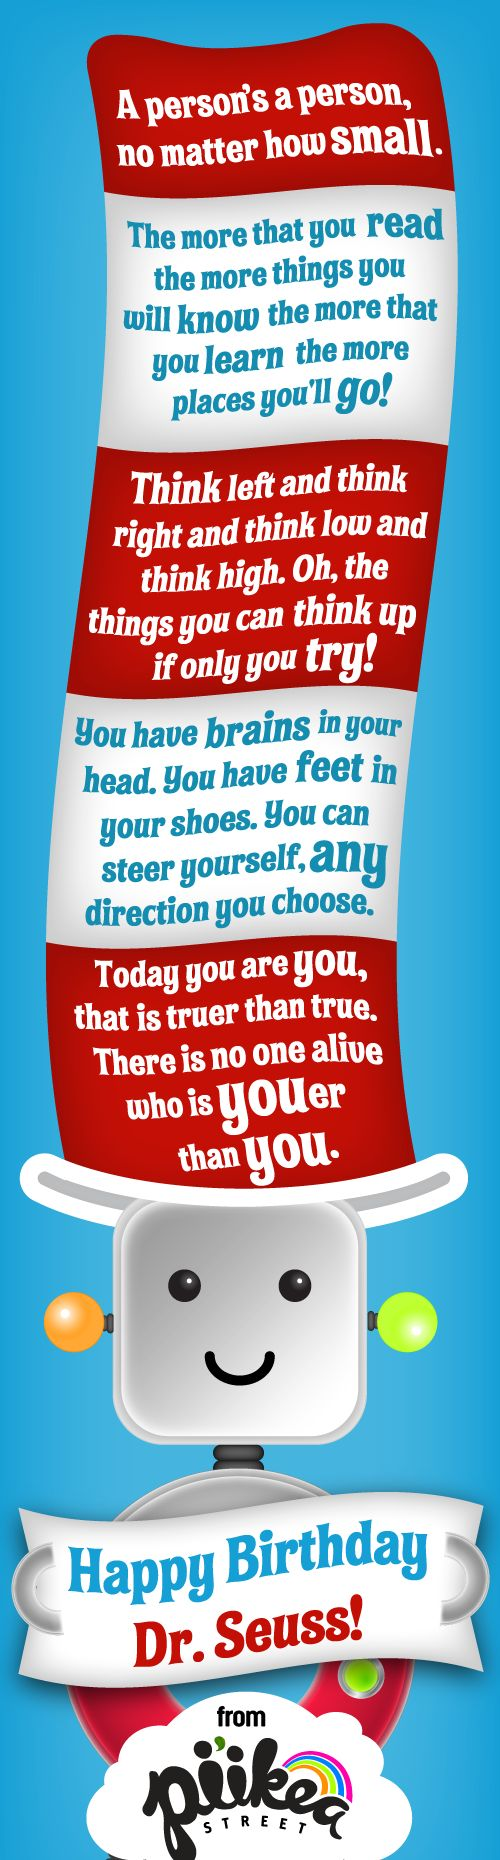 Celebrate dr seuss birthday or anyway with these free dr seuss quote - Seuss S Birthday On March To Celebrate We Ve Collected Some Of Our Favorite Quotes From That Silly Guy